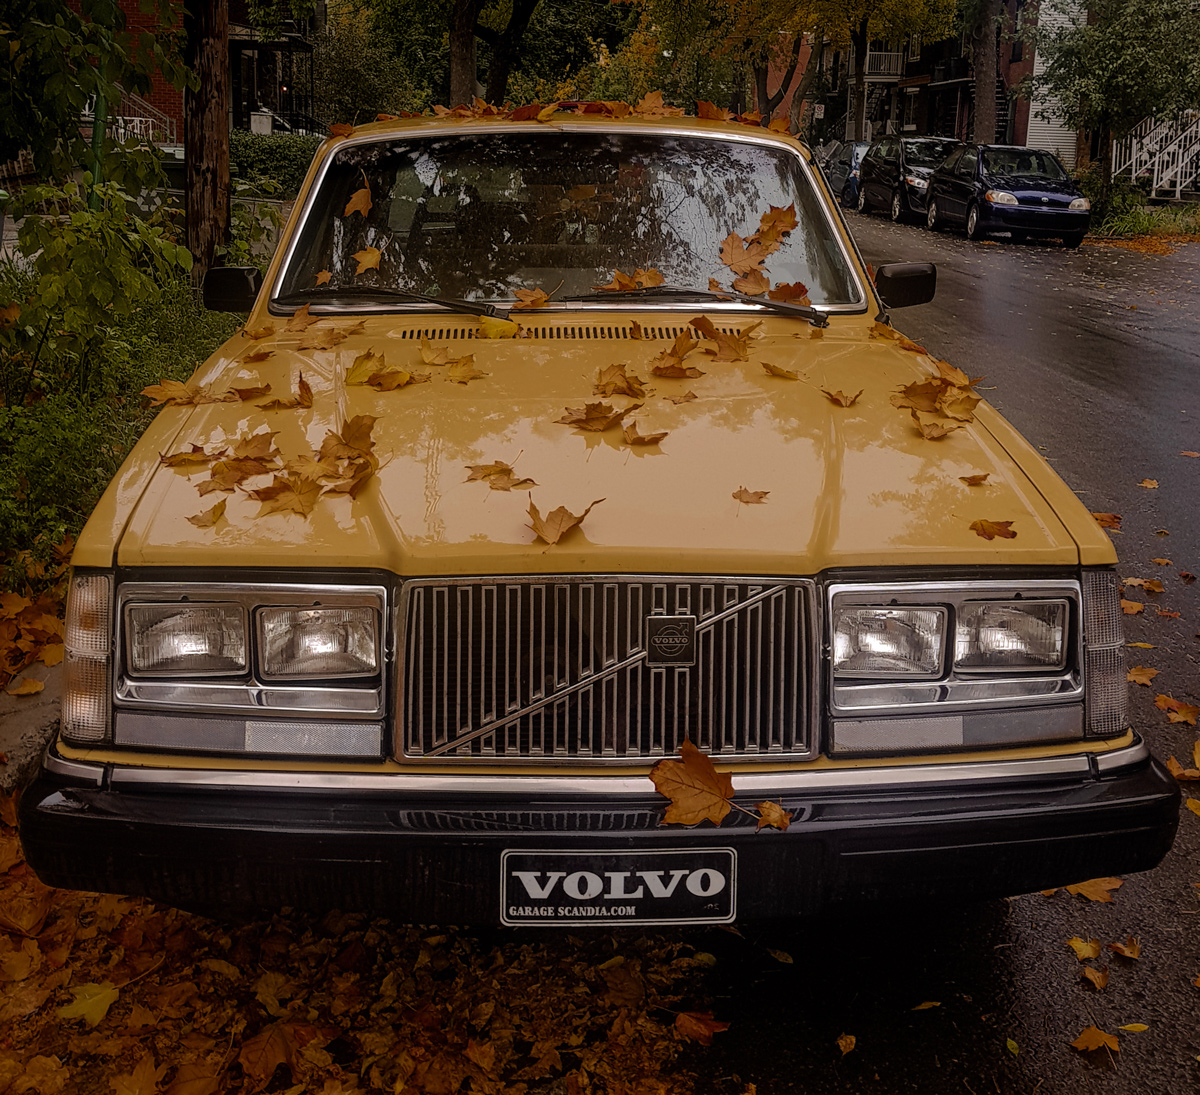 A yellow Volvo 262c parked on a driveway covered in brown leaves